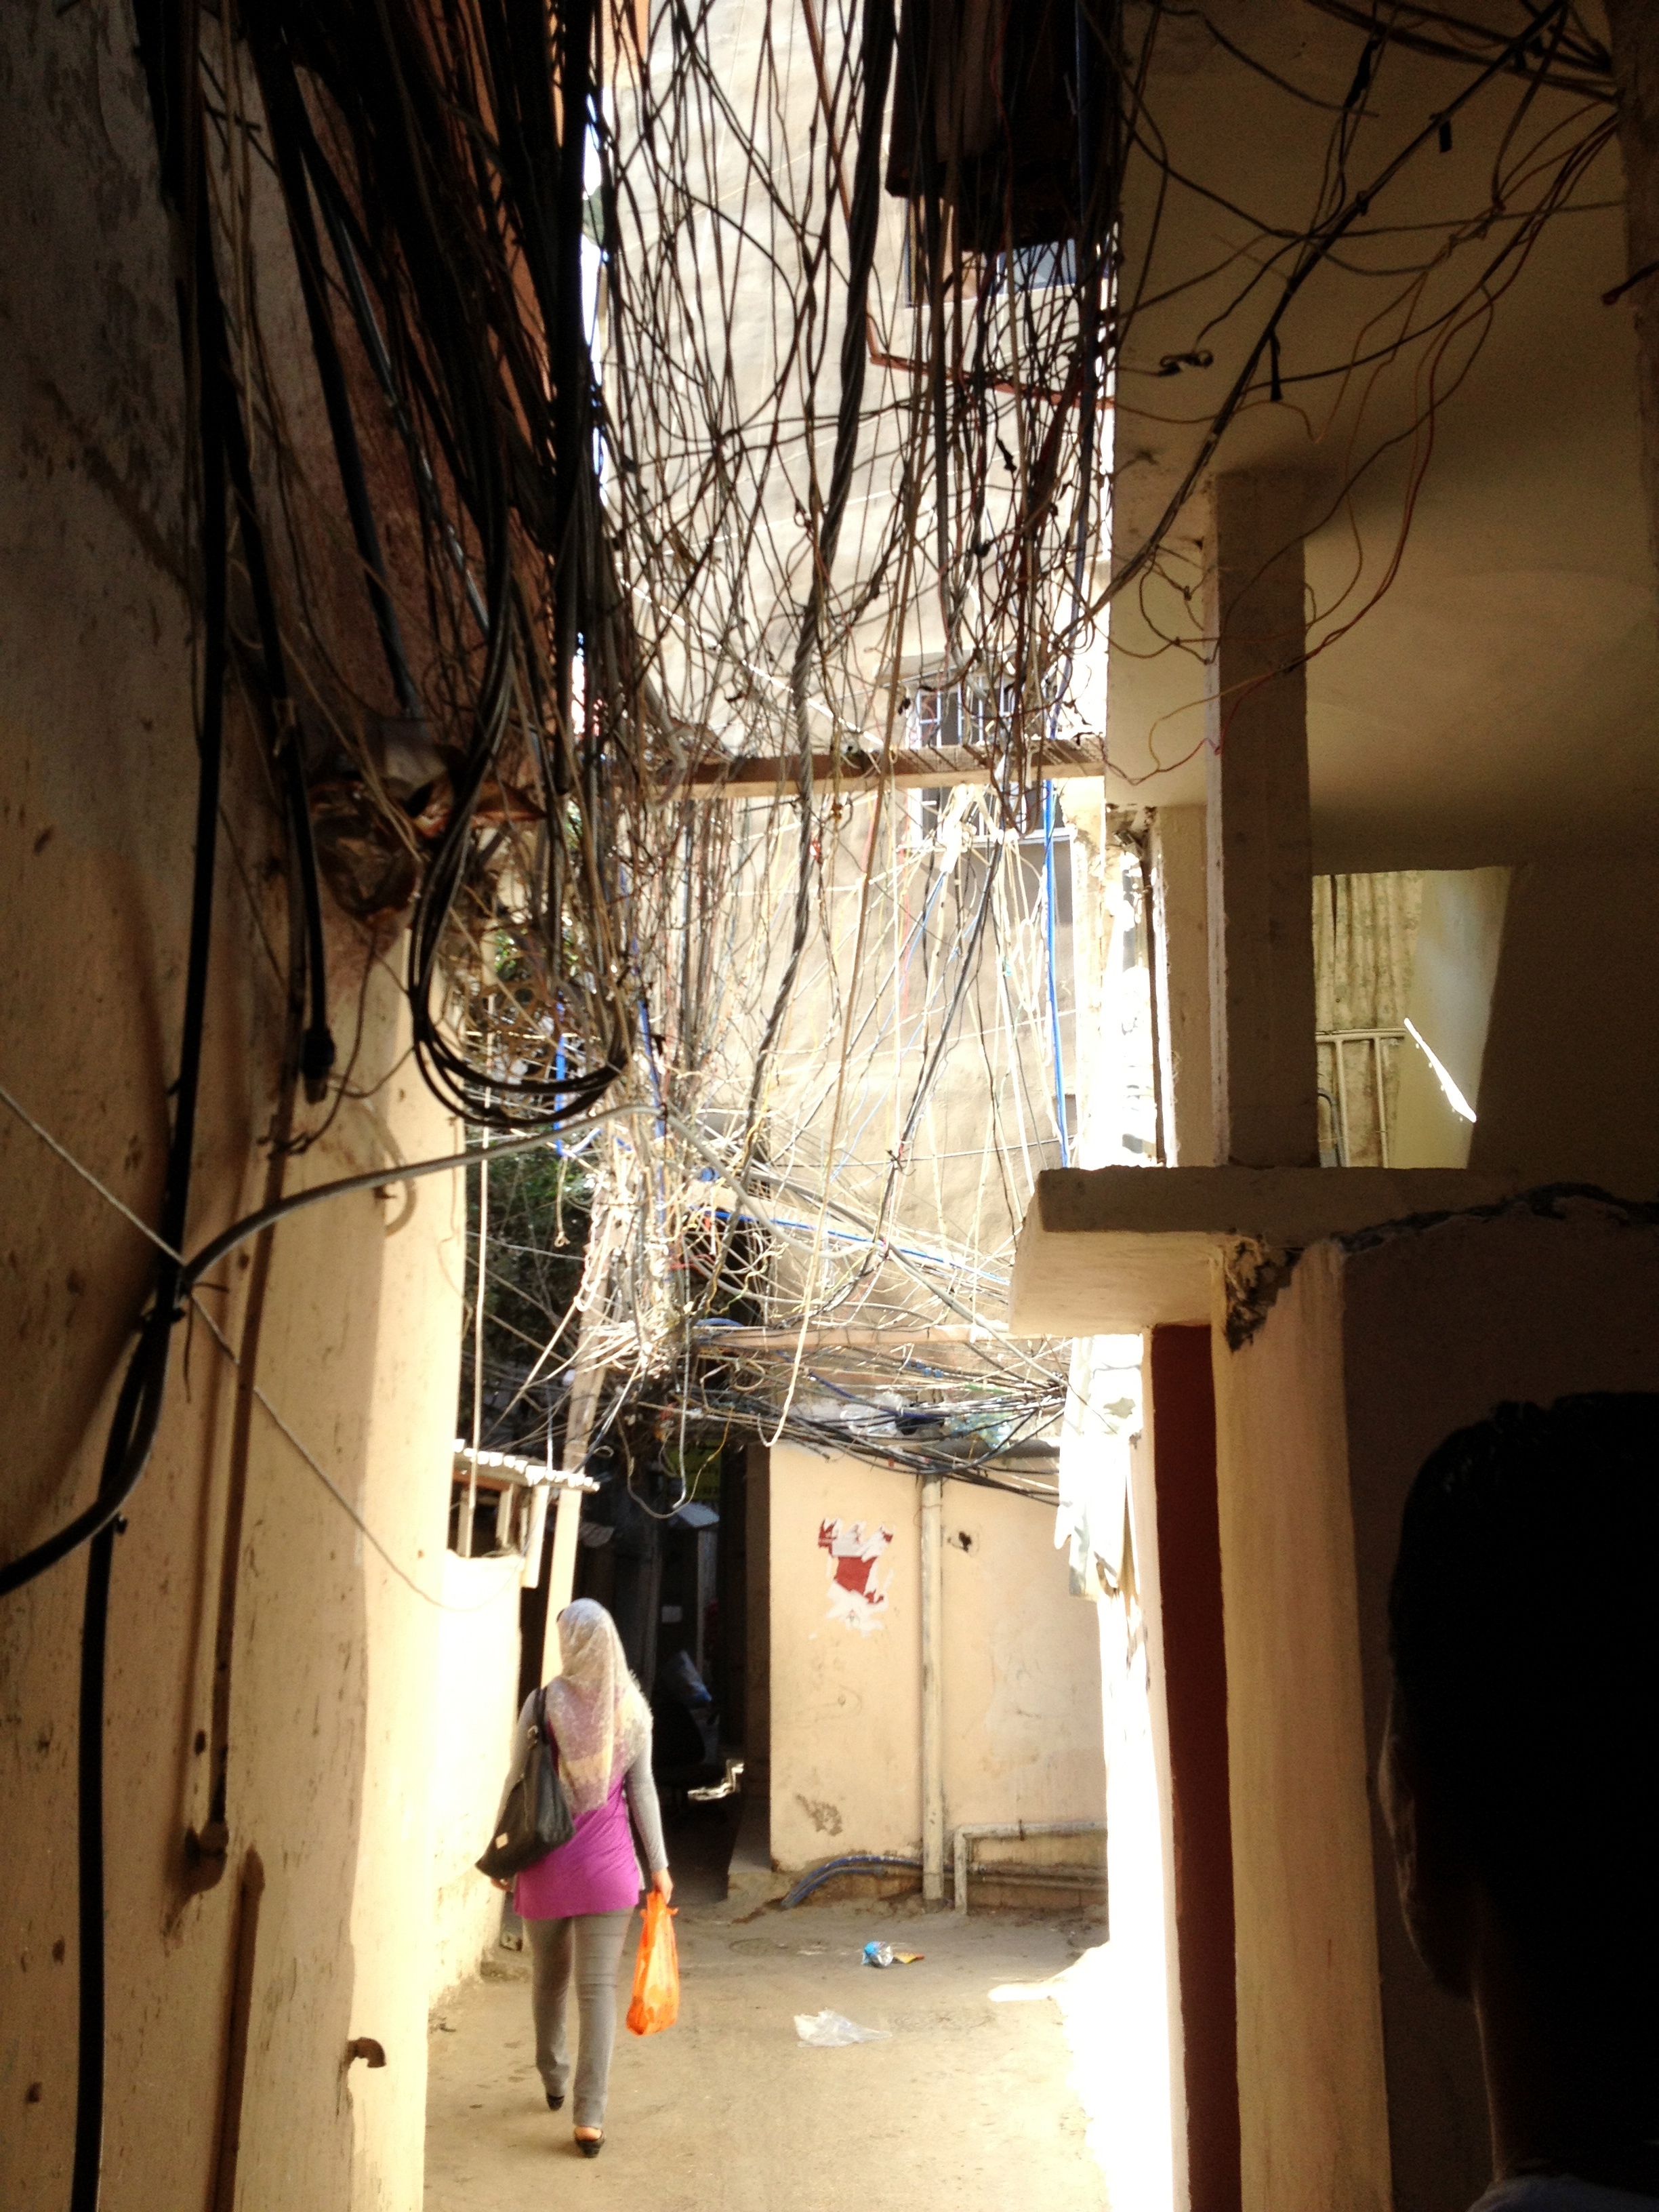 Electric wiring intertwined with water cables - after the young men lifted it into troughs - Burj El Barajneh